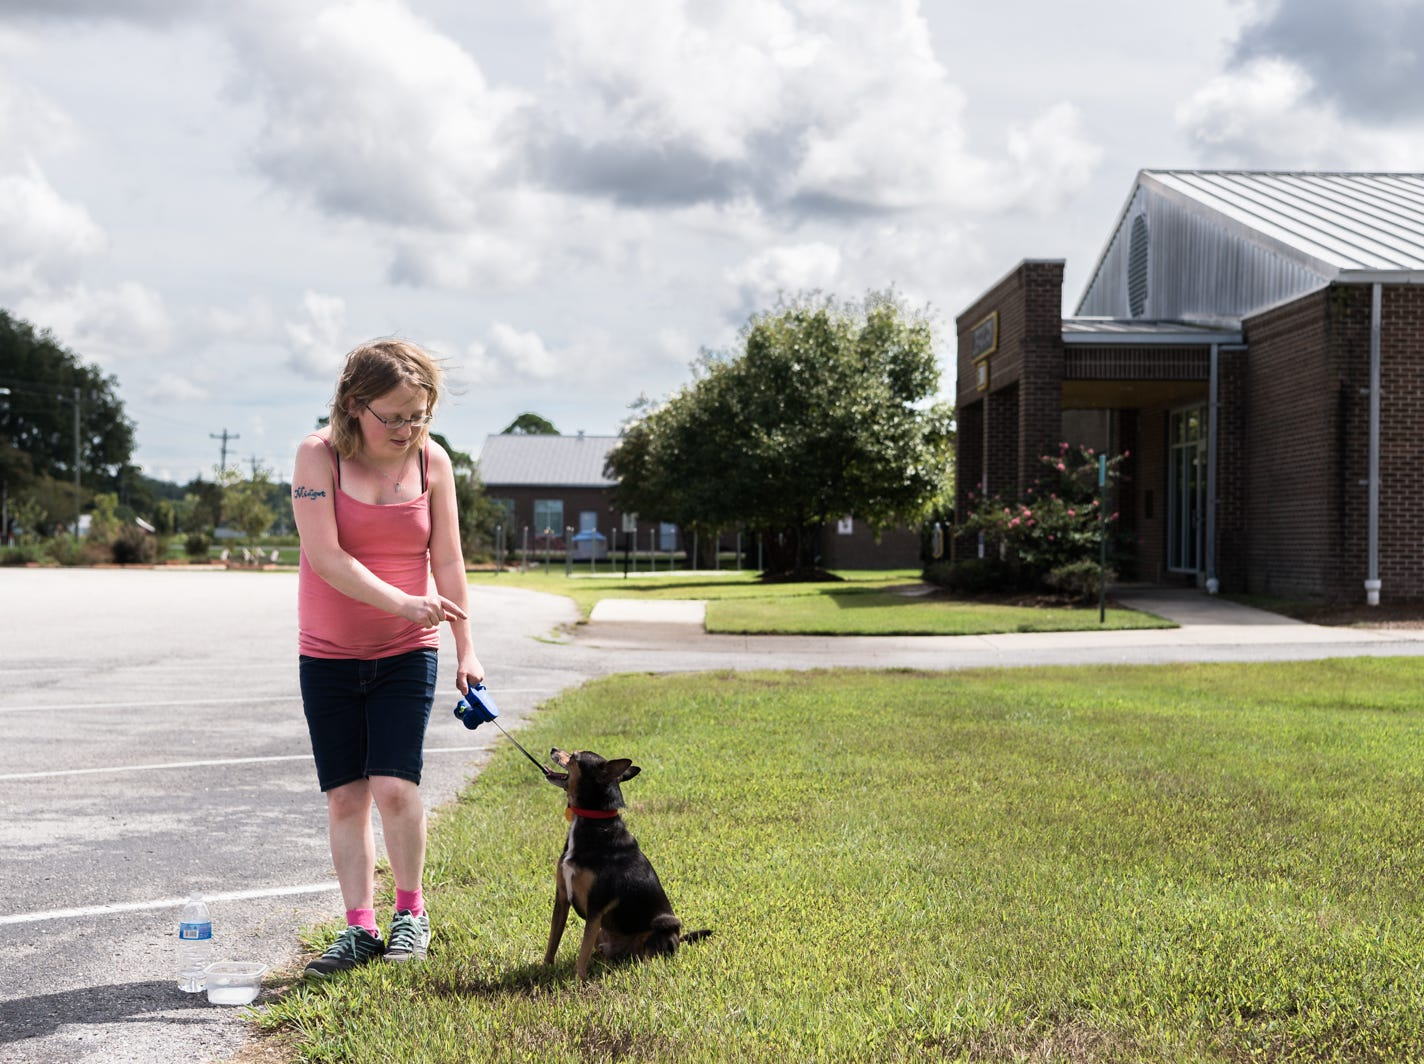 Kelly Rathburn waits with her dog Spud before leaving on a bus to Knightdale high school in Knightdale, a suburb of Raleigh before Hurricane Florence makes landfall, Sept. 12, 2018. A storm surge of about three to six feet is expected for Swan Quarter, and around six feet for Ocracoke Island with 12-20 inches of rainfall for the entire area. Hyde county as well as several surrounding counties are under mandatory evacuation.